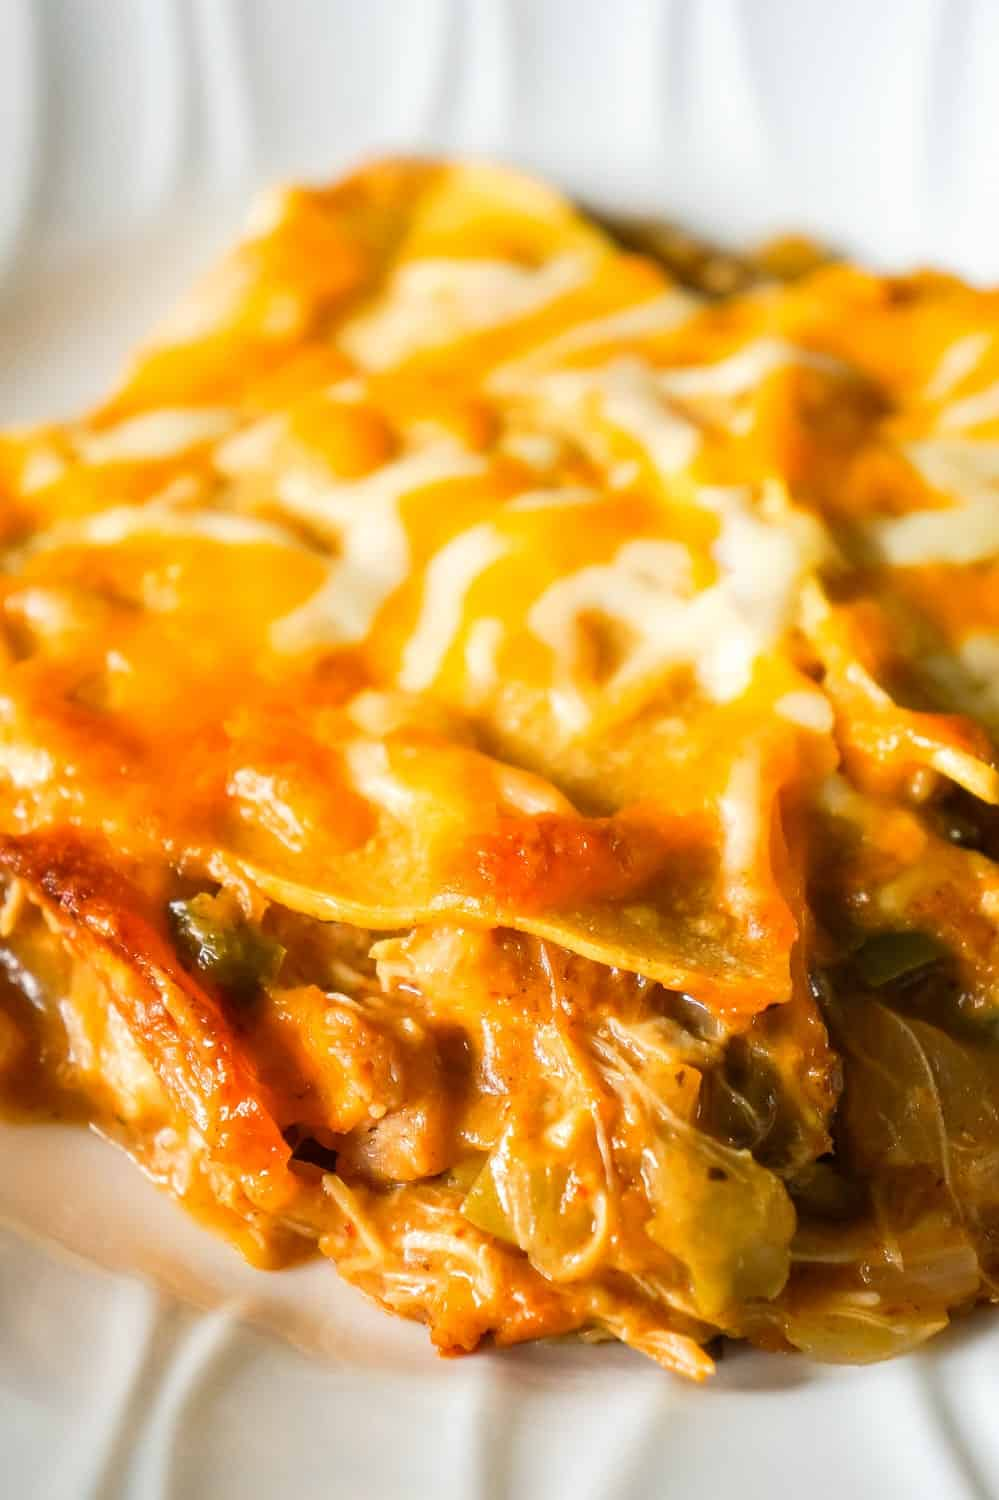 King Ranch Chicken Casserole is a creamy chicken casserole loaded with green peppers, chopped green chilies and layers of corn tortillas and cheese.